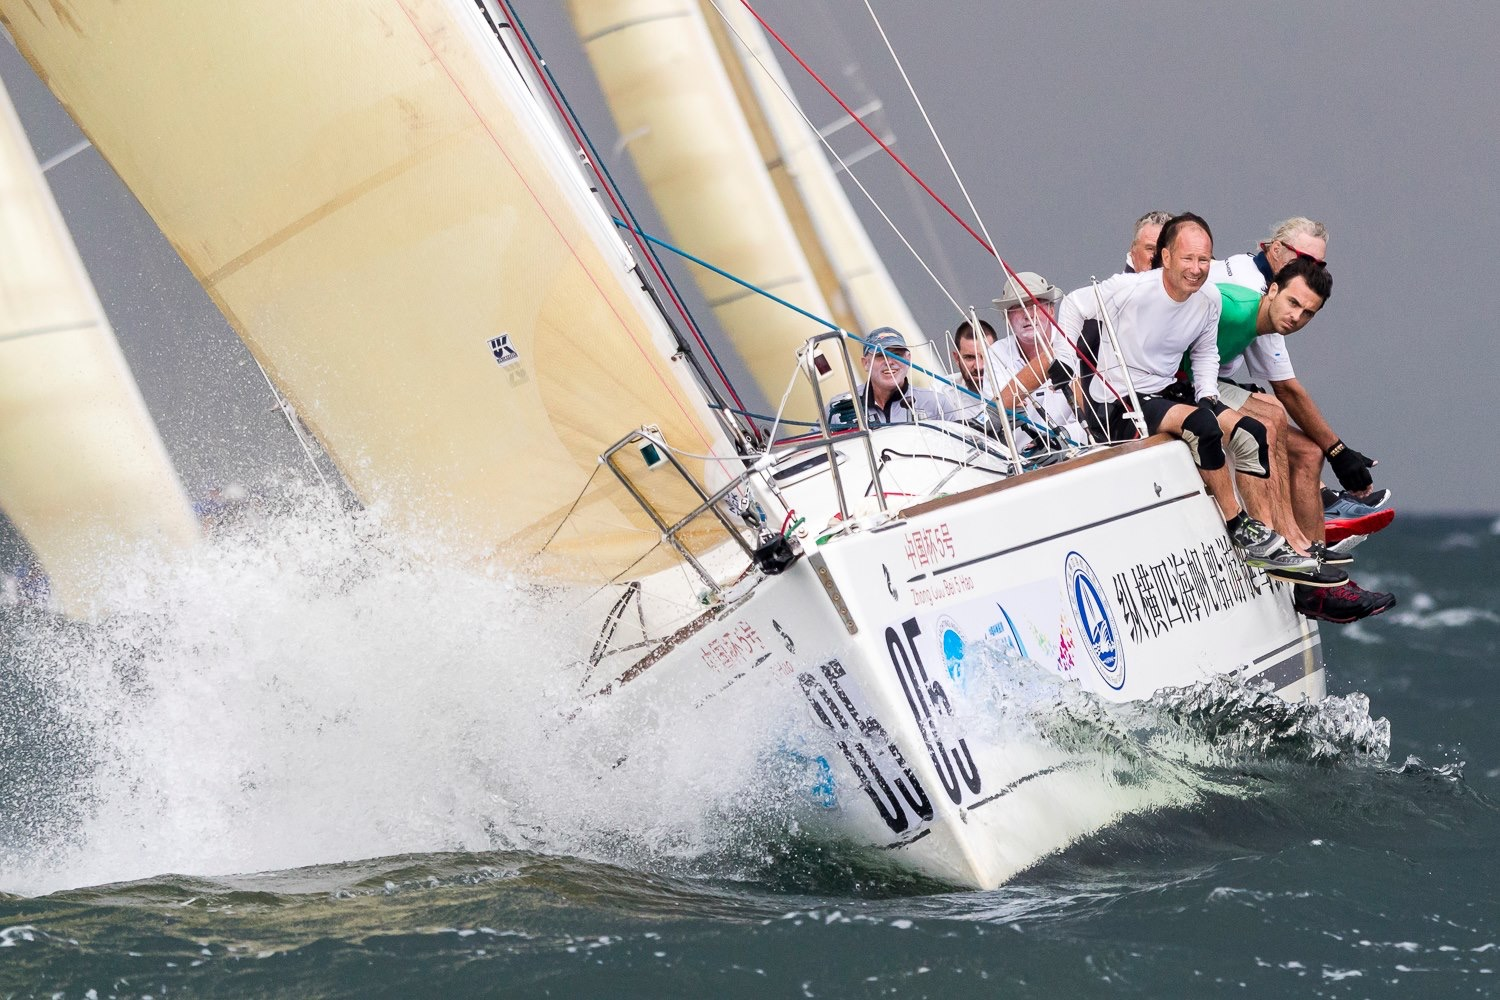 A fleet of Beneteau 40.7s racing at the China Cup International Regatta with an aramid Flex genoas and mains.